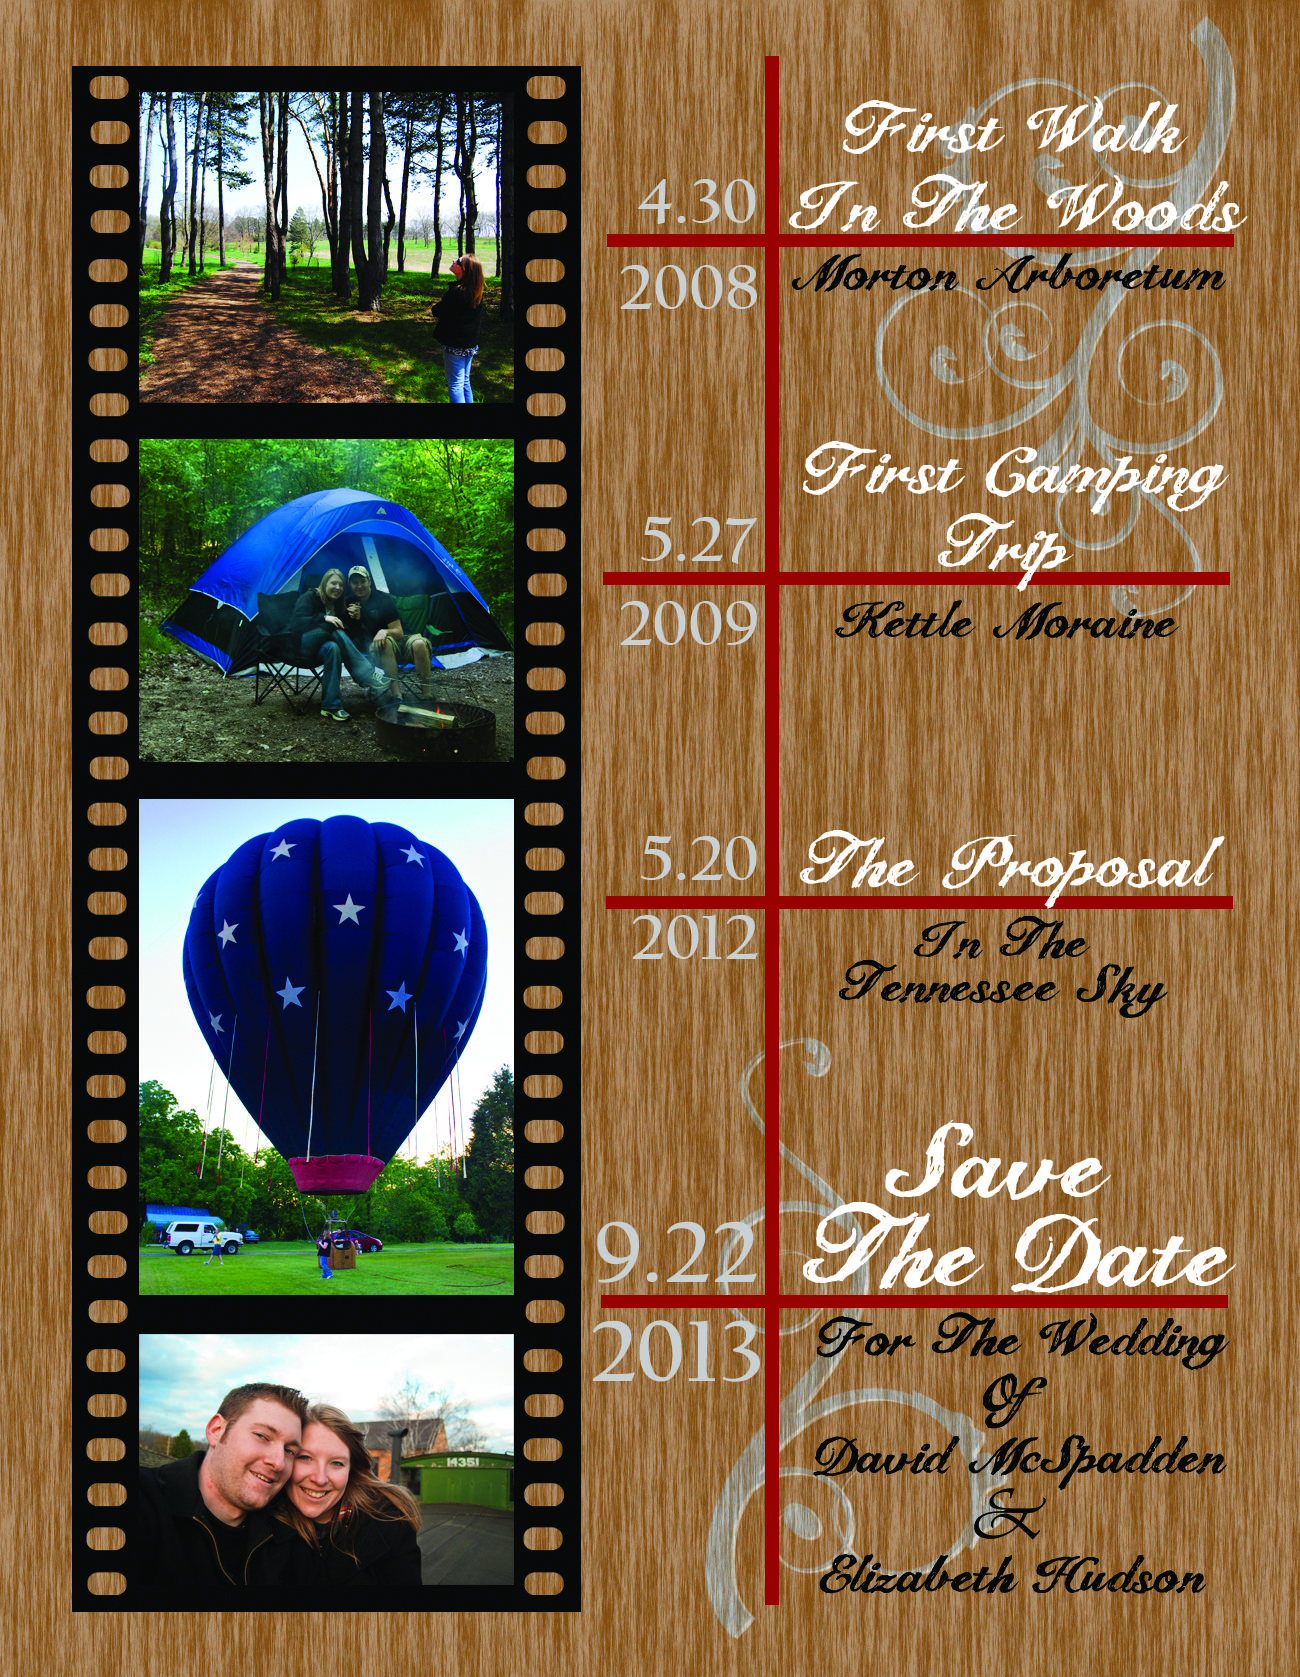 Our Save the Date Postcards.We took an idea from this site, and my Fiancé used photoshop to design and create every aspect of this. we then chose the wording and photos together and LOVE how it turned out!